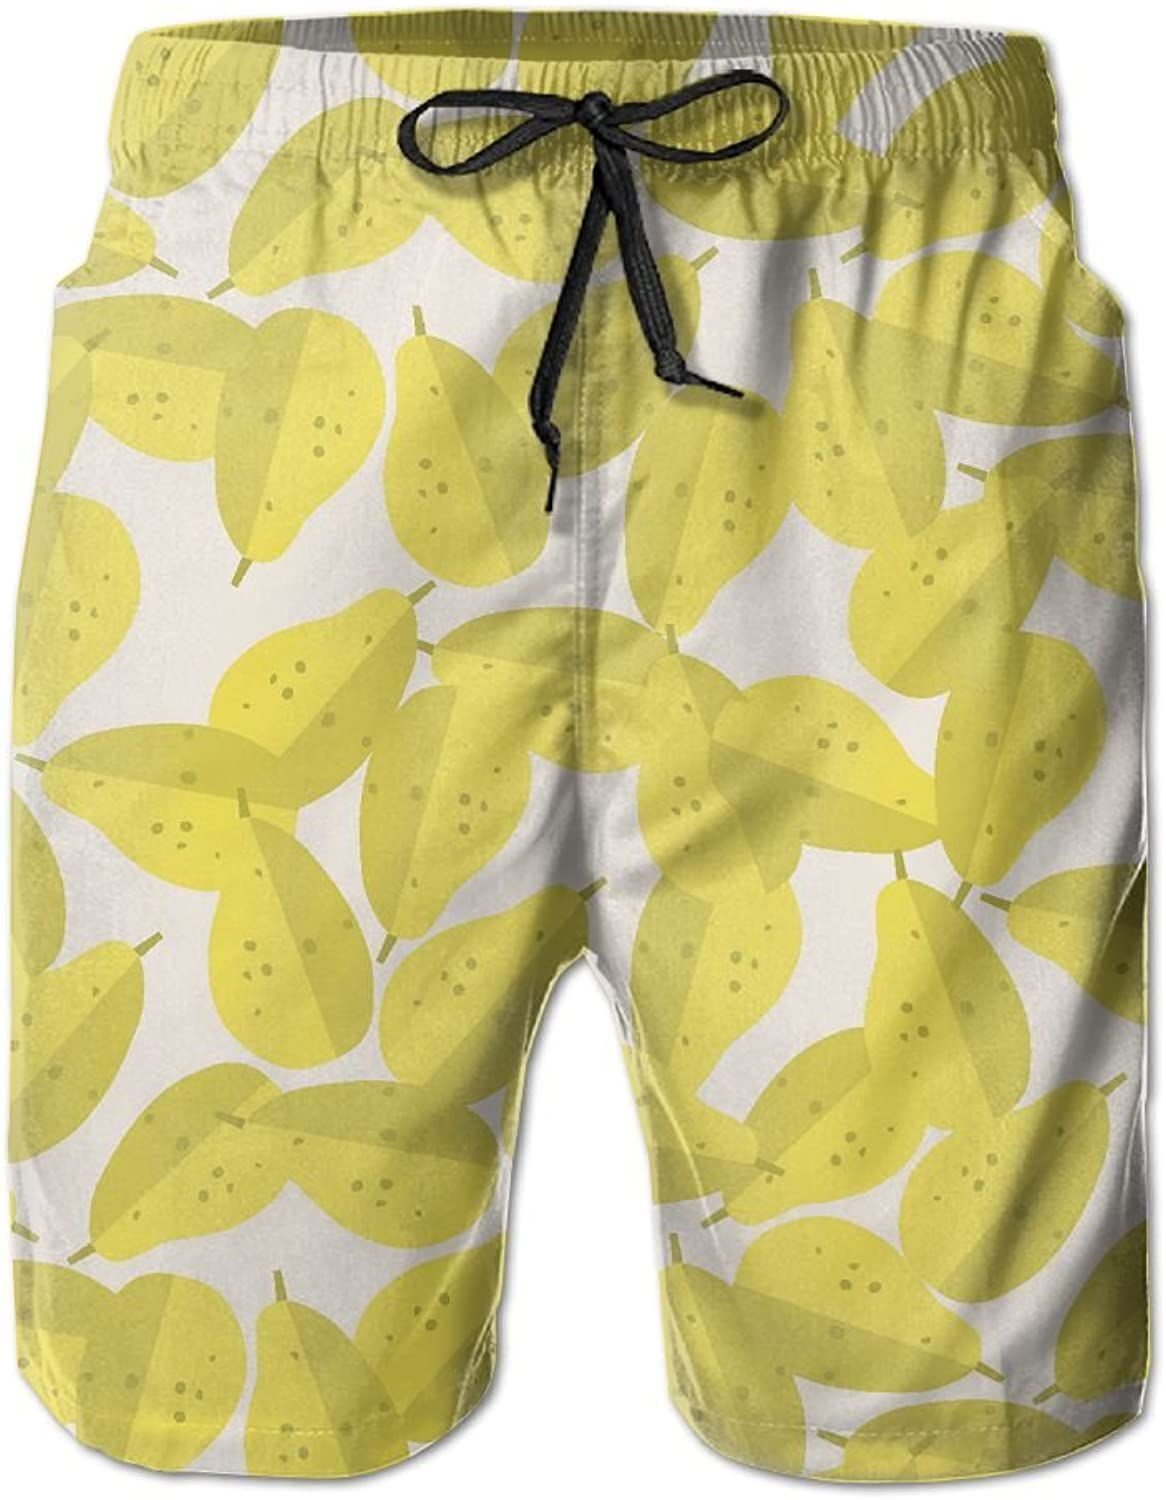 Beach Pants Yellow Pear Fruits Men's Workout Gym Short Shorts Pockets Sweatpants Waist Tension Design